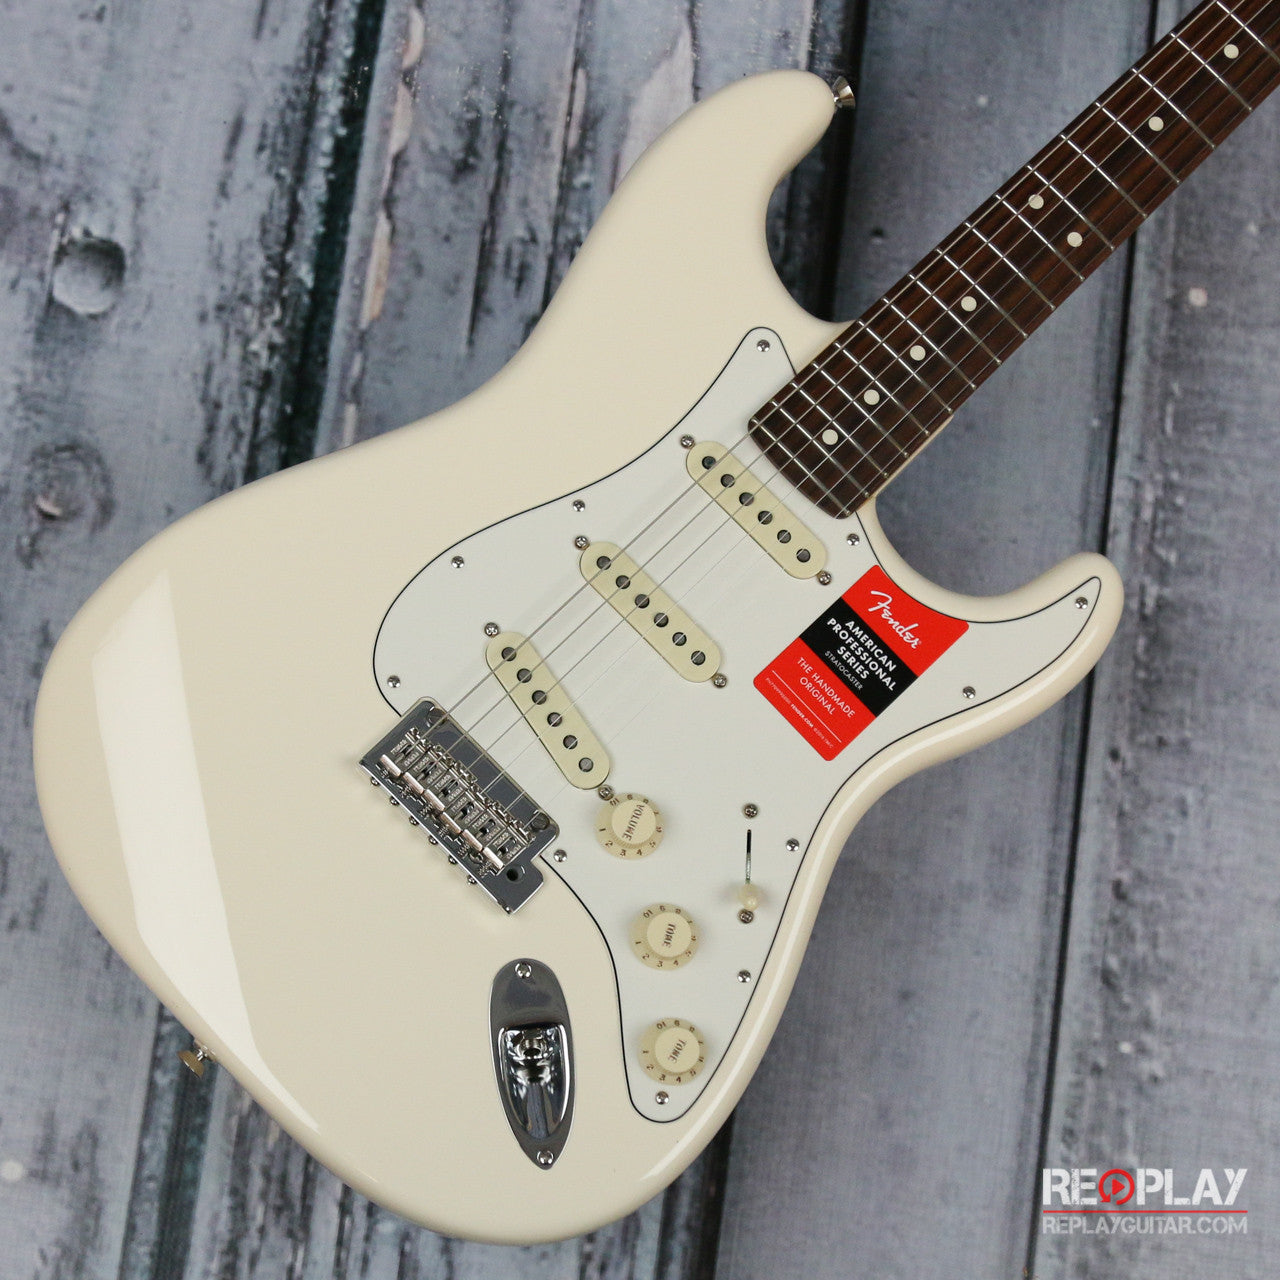 fender stratocaster olympic white for sale replay guitar. Black Bedroom Furniture Sets. Home Design Ideas